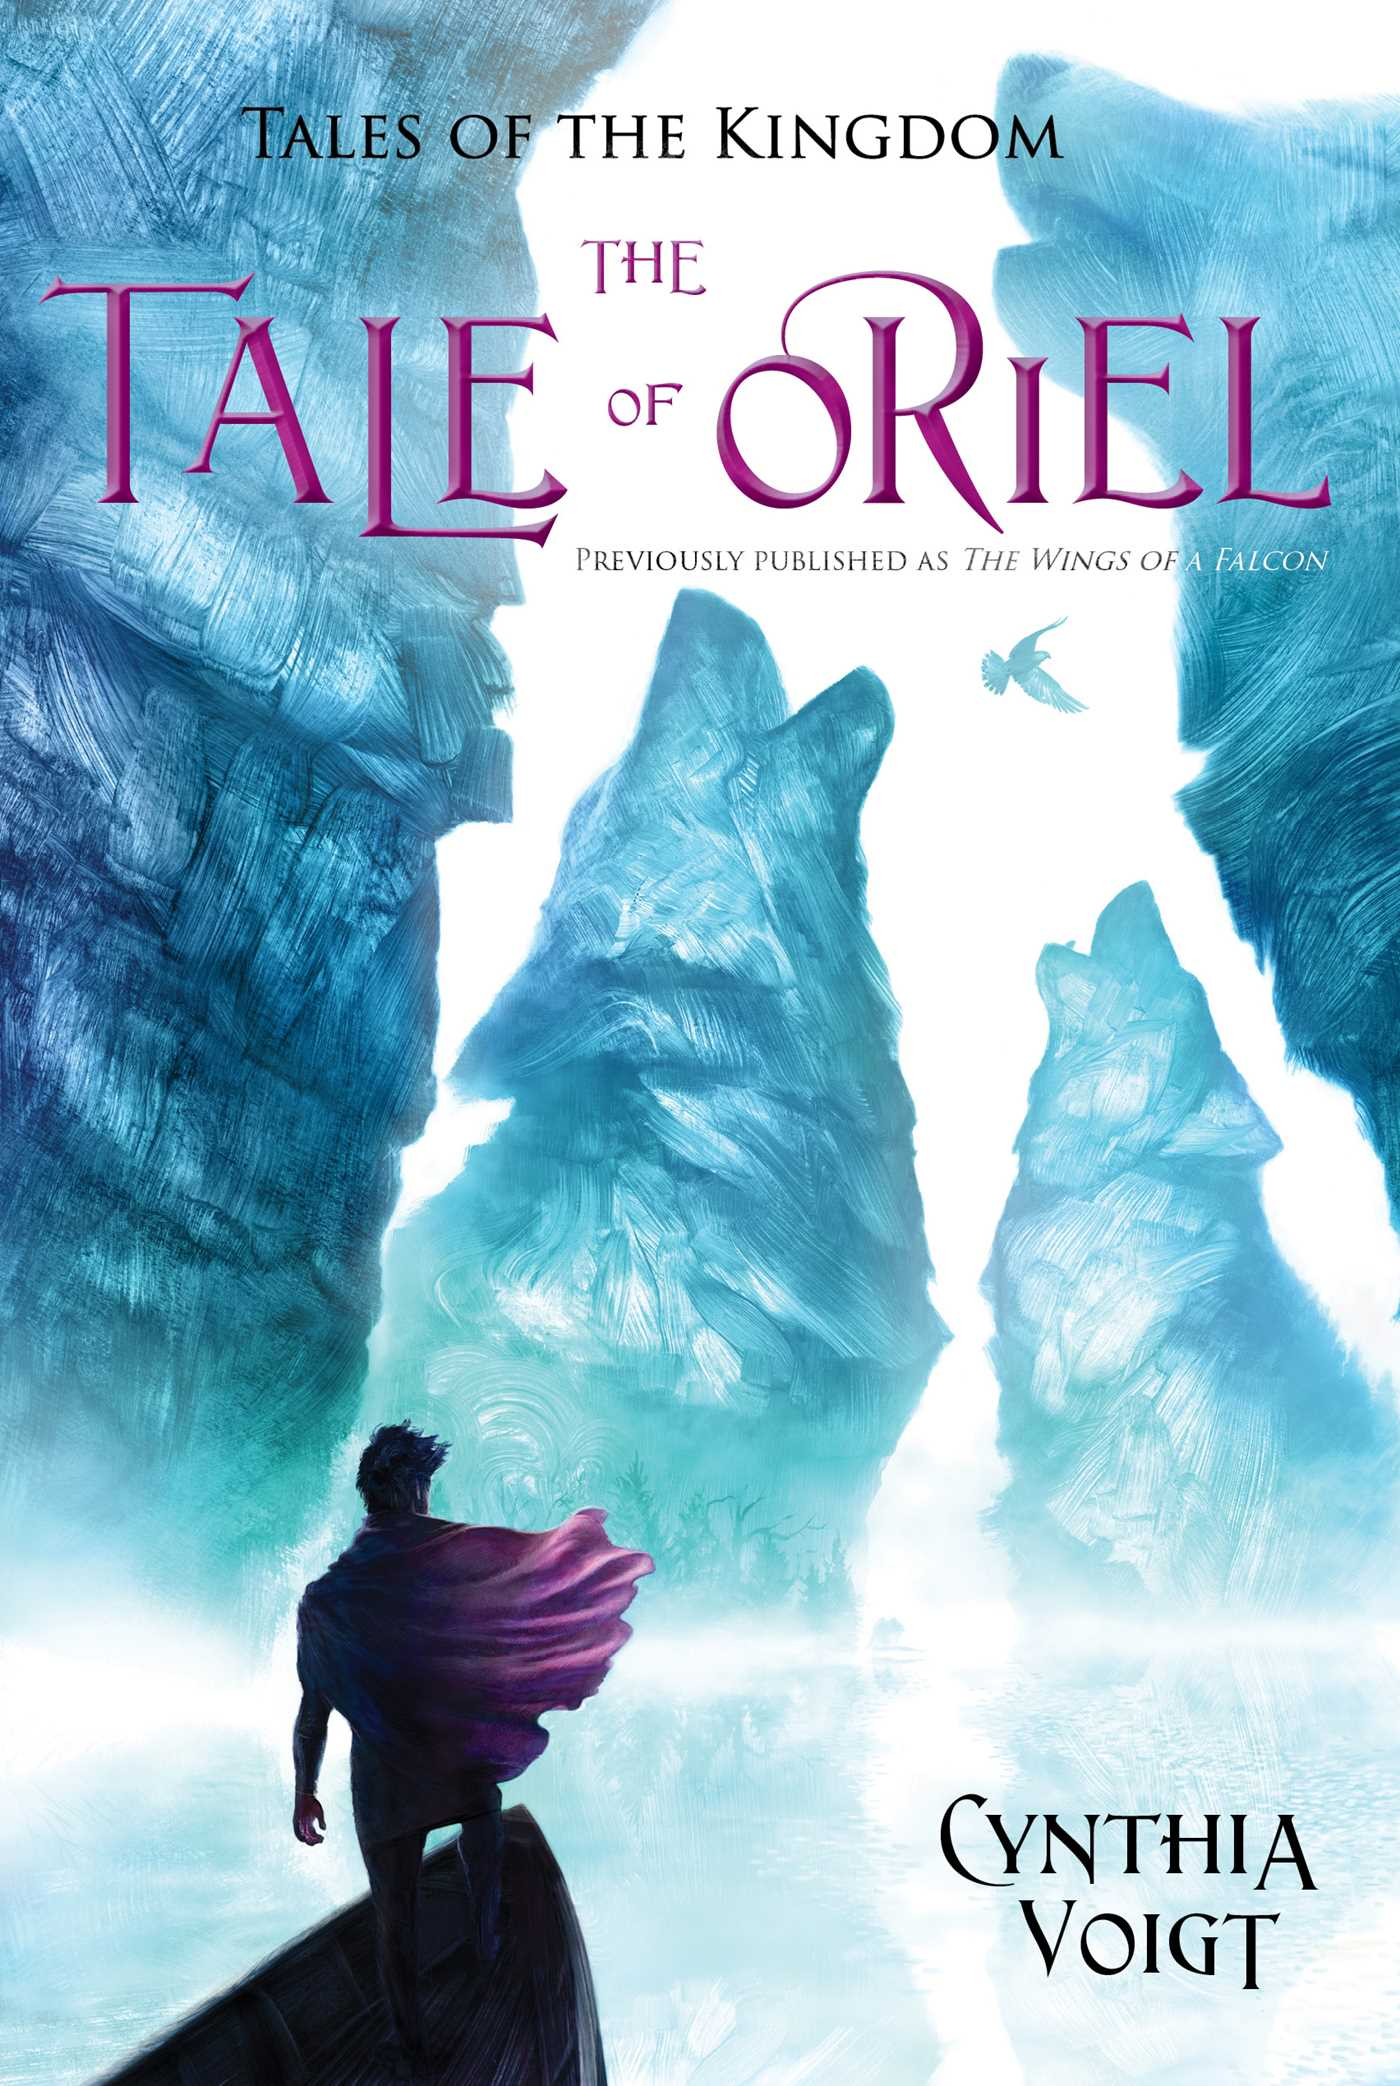 The tale of oriel 9781481403238 hr